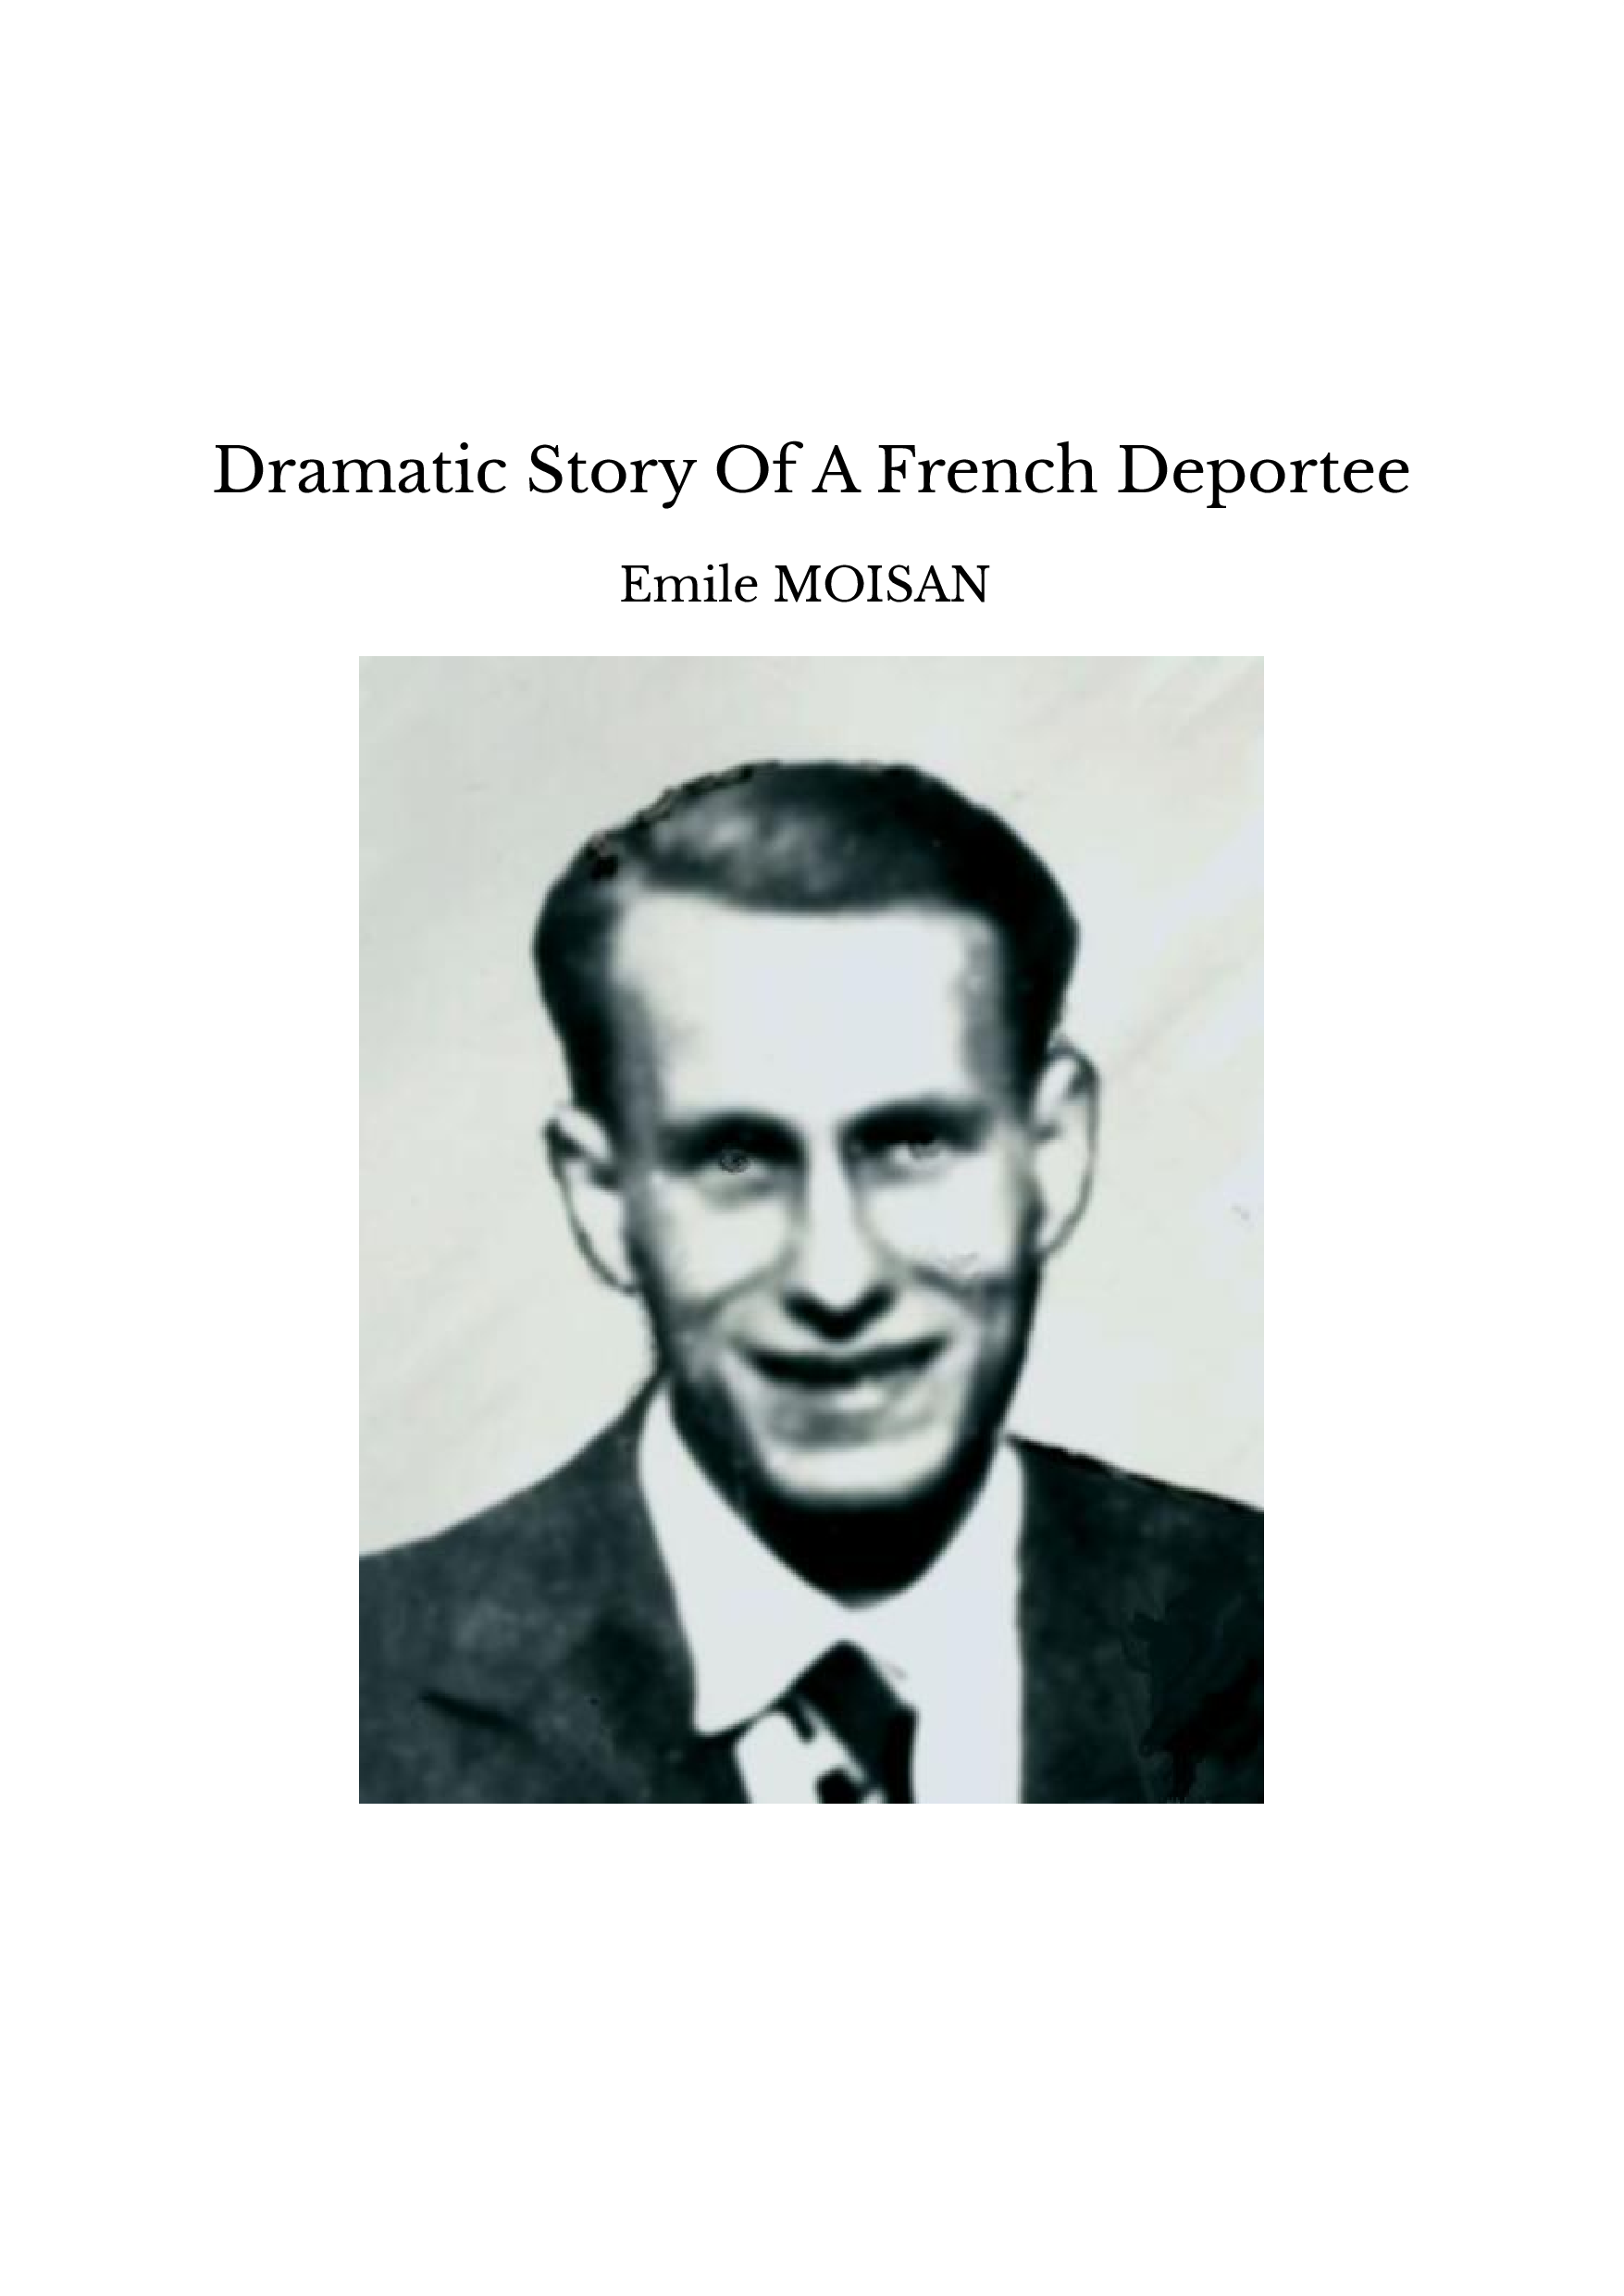 Dramatic Story Of A French Deportee